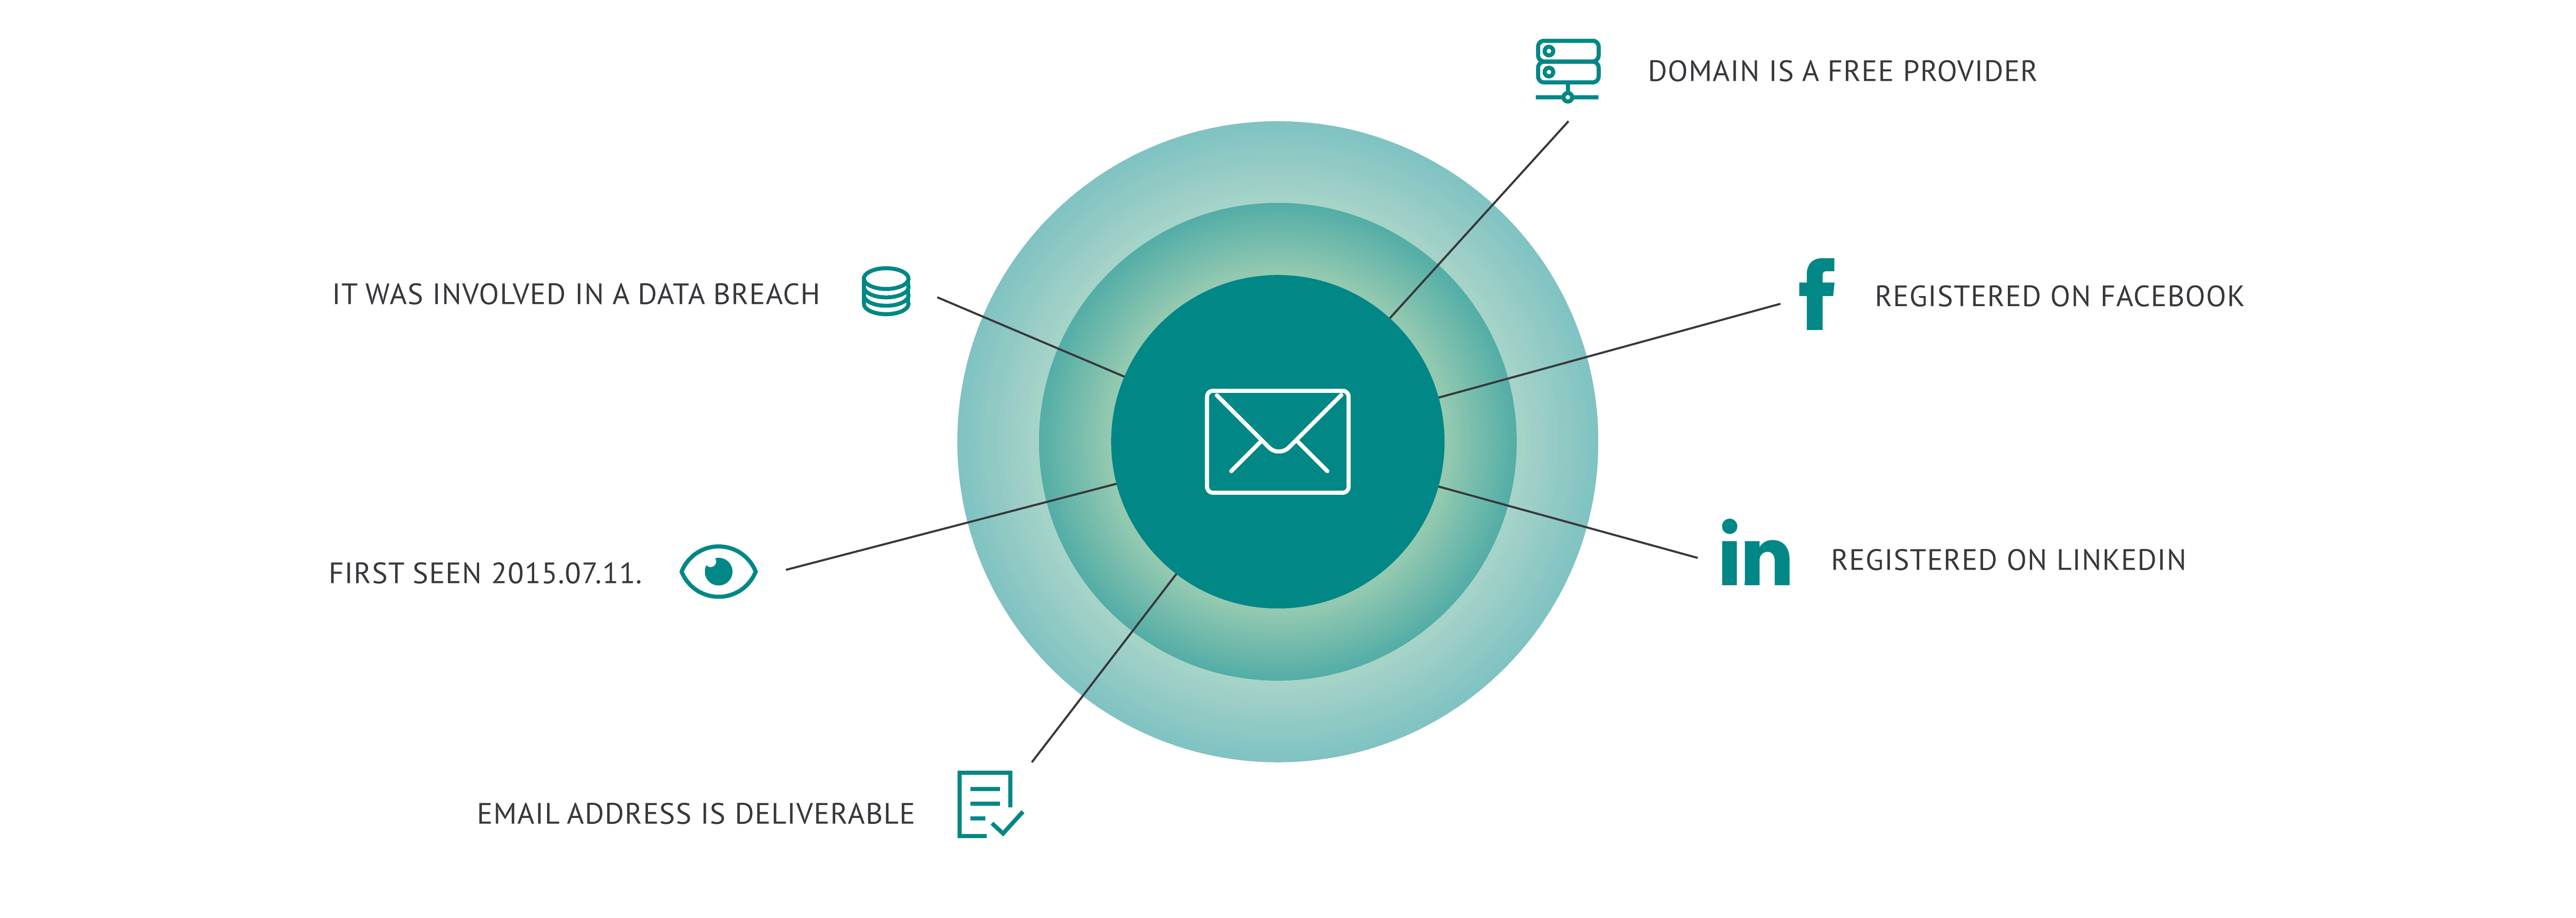 Data provided by data enrichment on a single email address